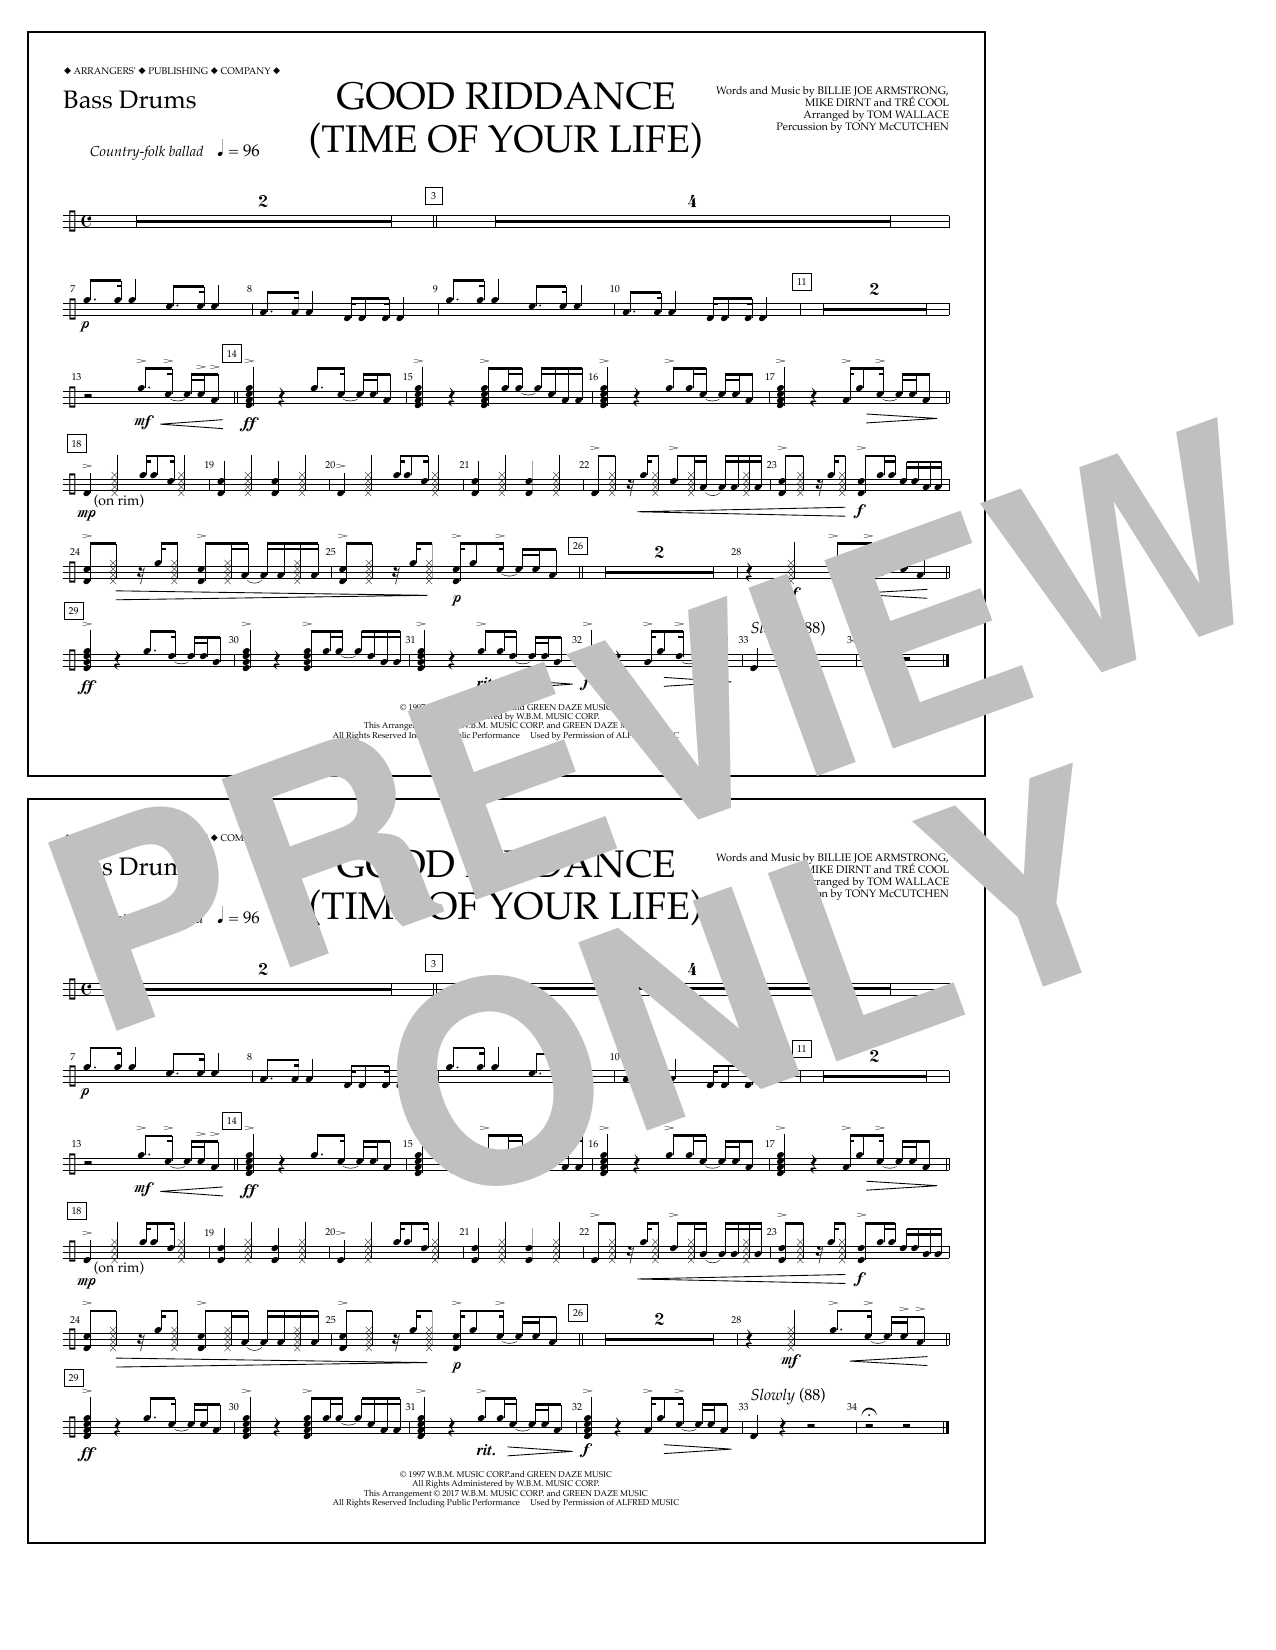 Good Riddance (Time of Your Life) - Bass Drums Sheet Music